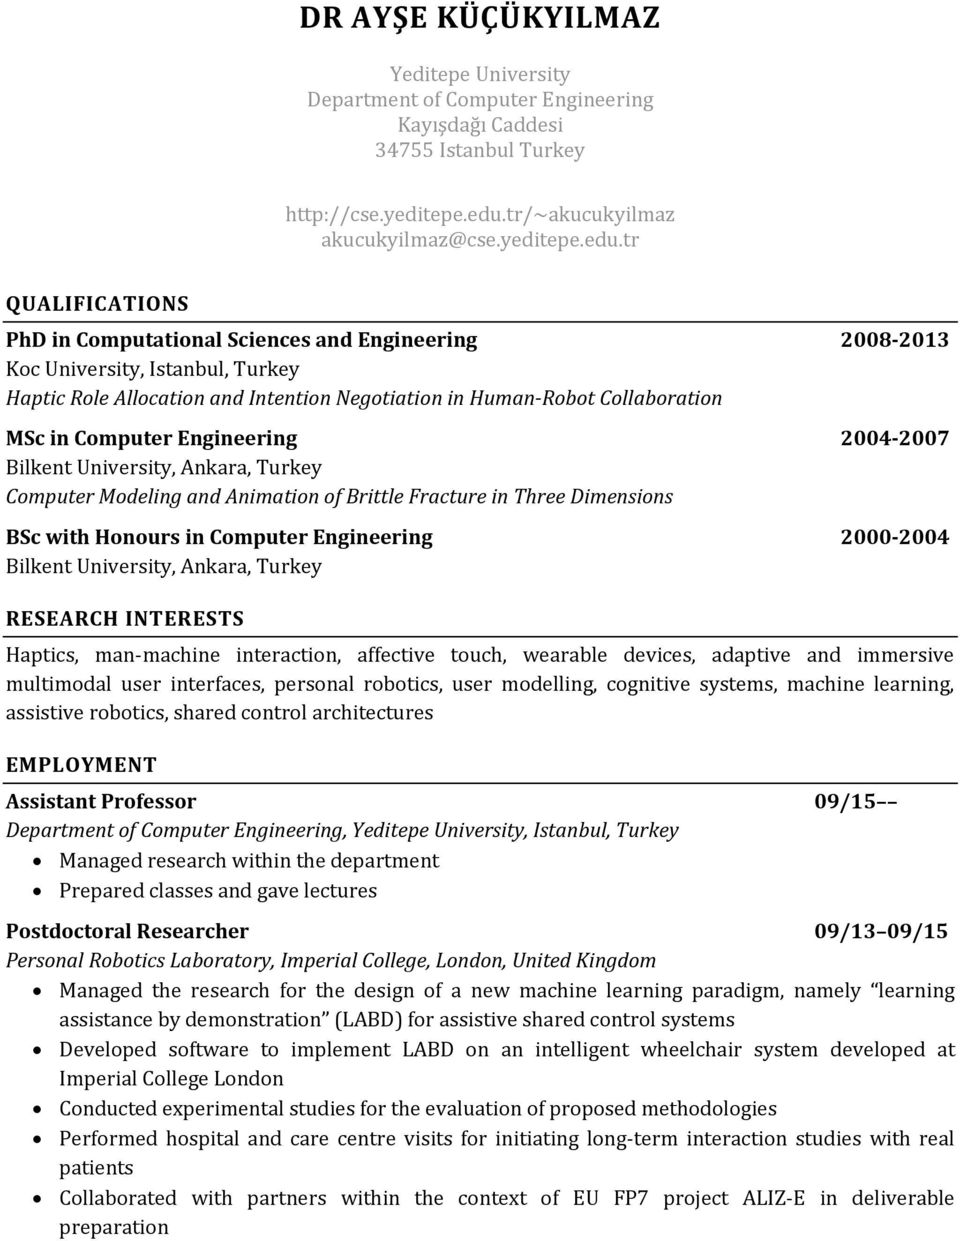 tr QUALIFICATIONS PhD in Computational Sciences and Engineering 2008-2013 Koc University, Istanbul, Turkey Haptic Role Allocation and Intention Negotiation in Human Robot Collaboration MSc in